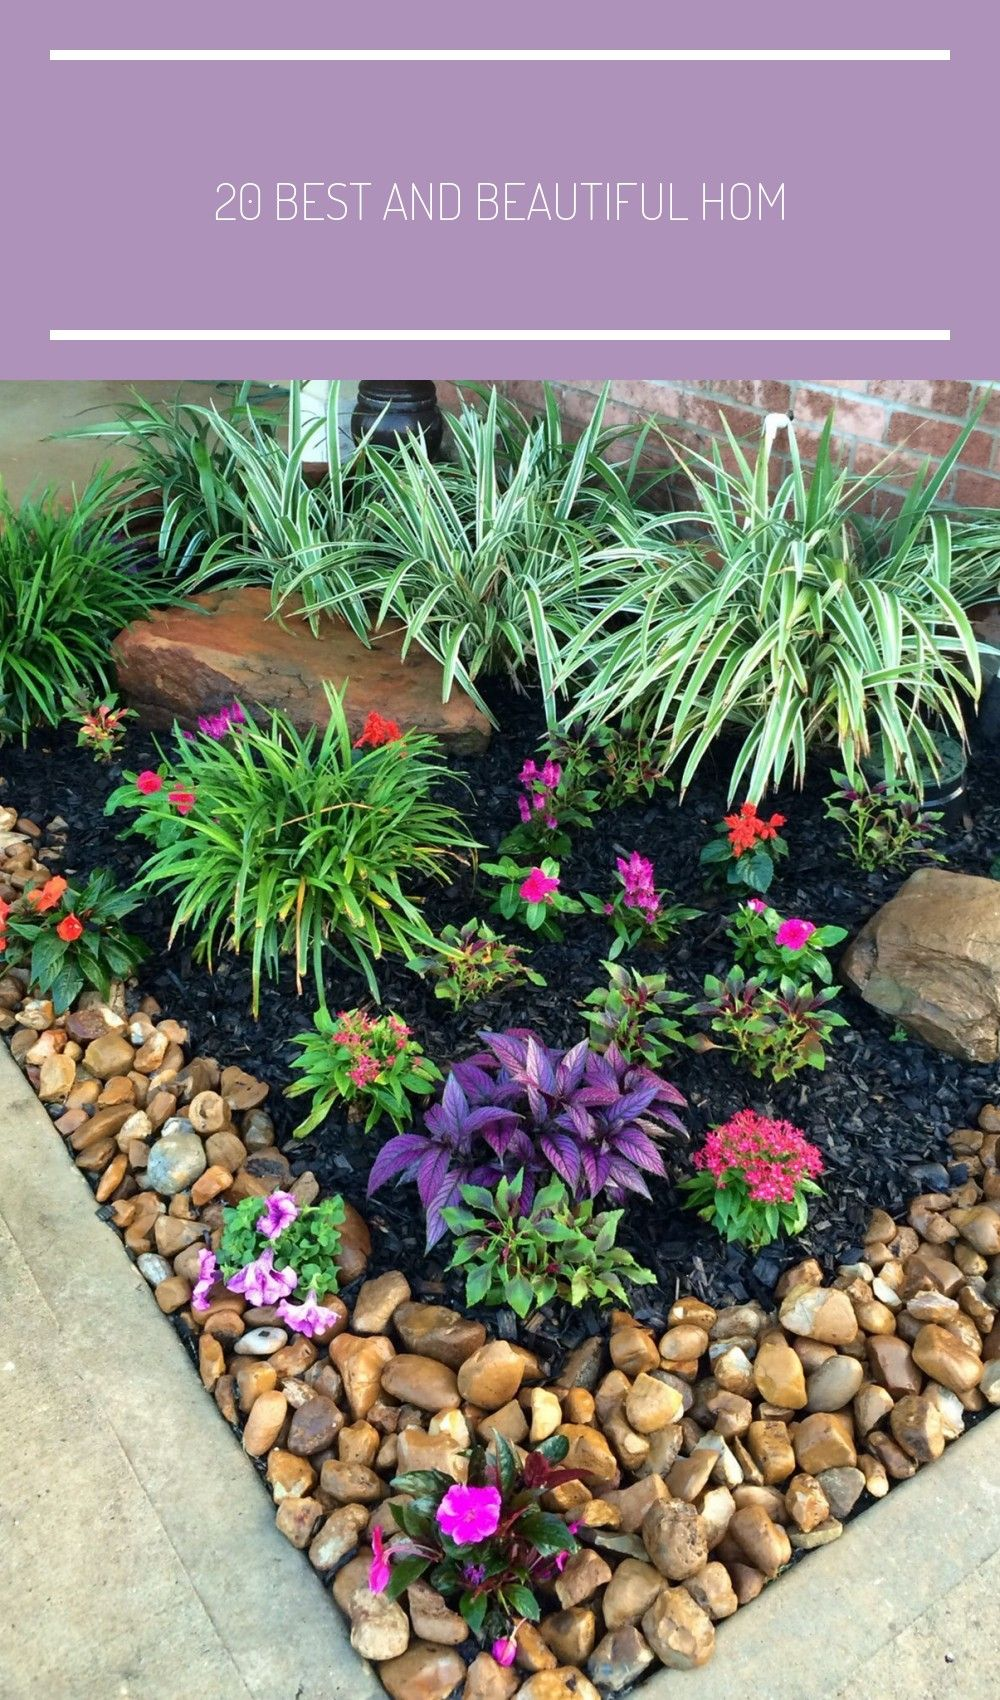 20 Best And Beautiful Home Outdoor Ideas For Enjoying Your Days Rockgardenlandscaping The Beauty Of A Backyard Landscaping Rock Garden Landscaping Front Yard